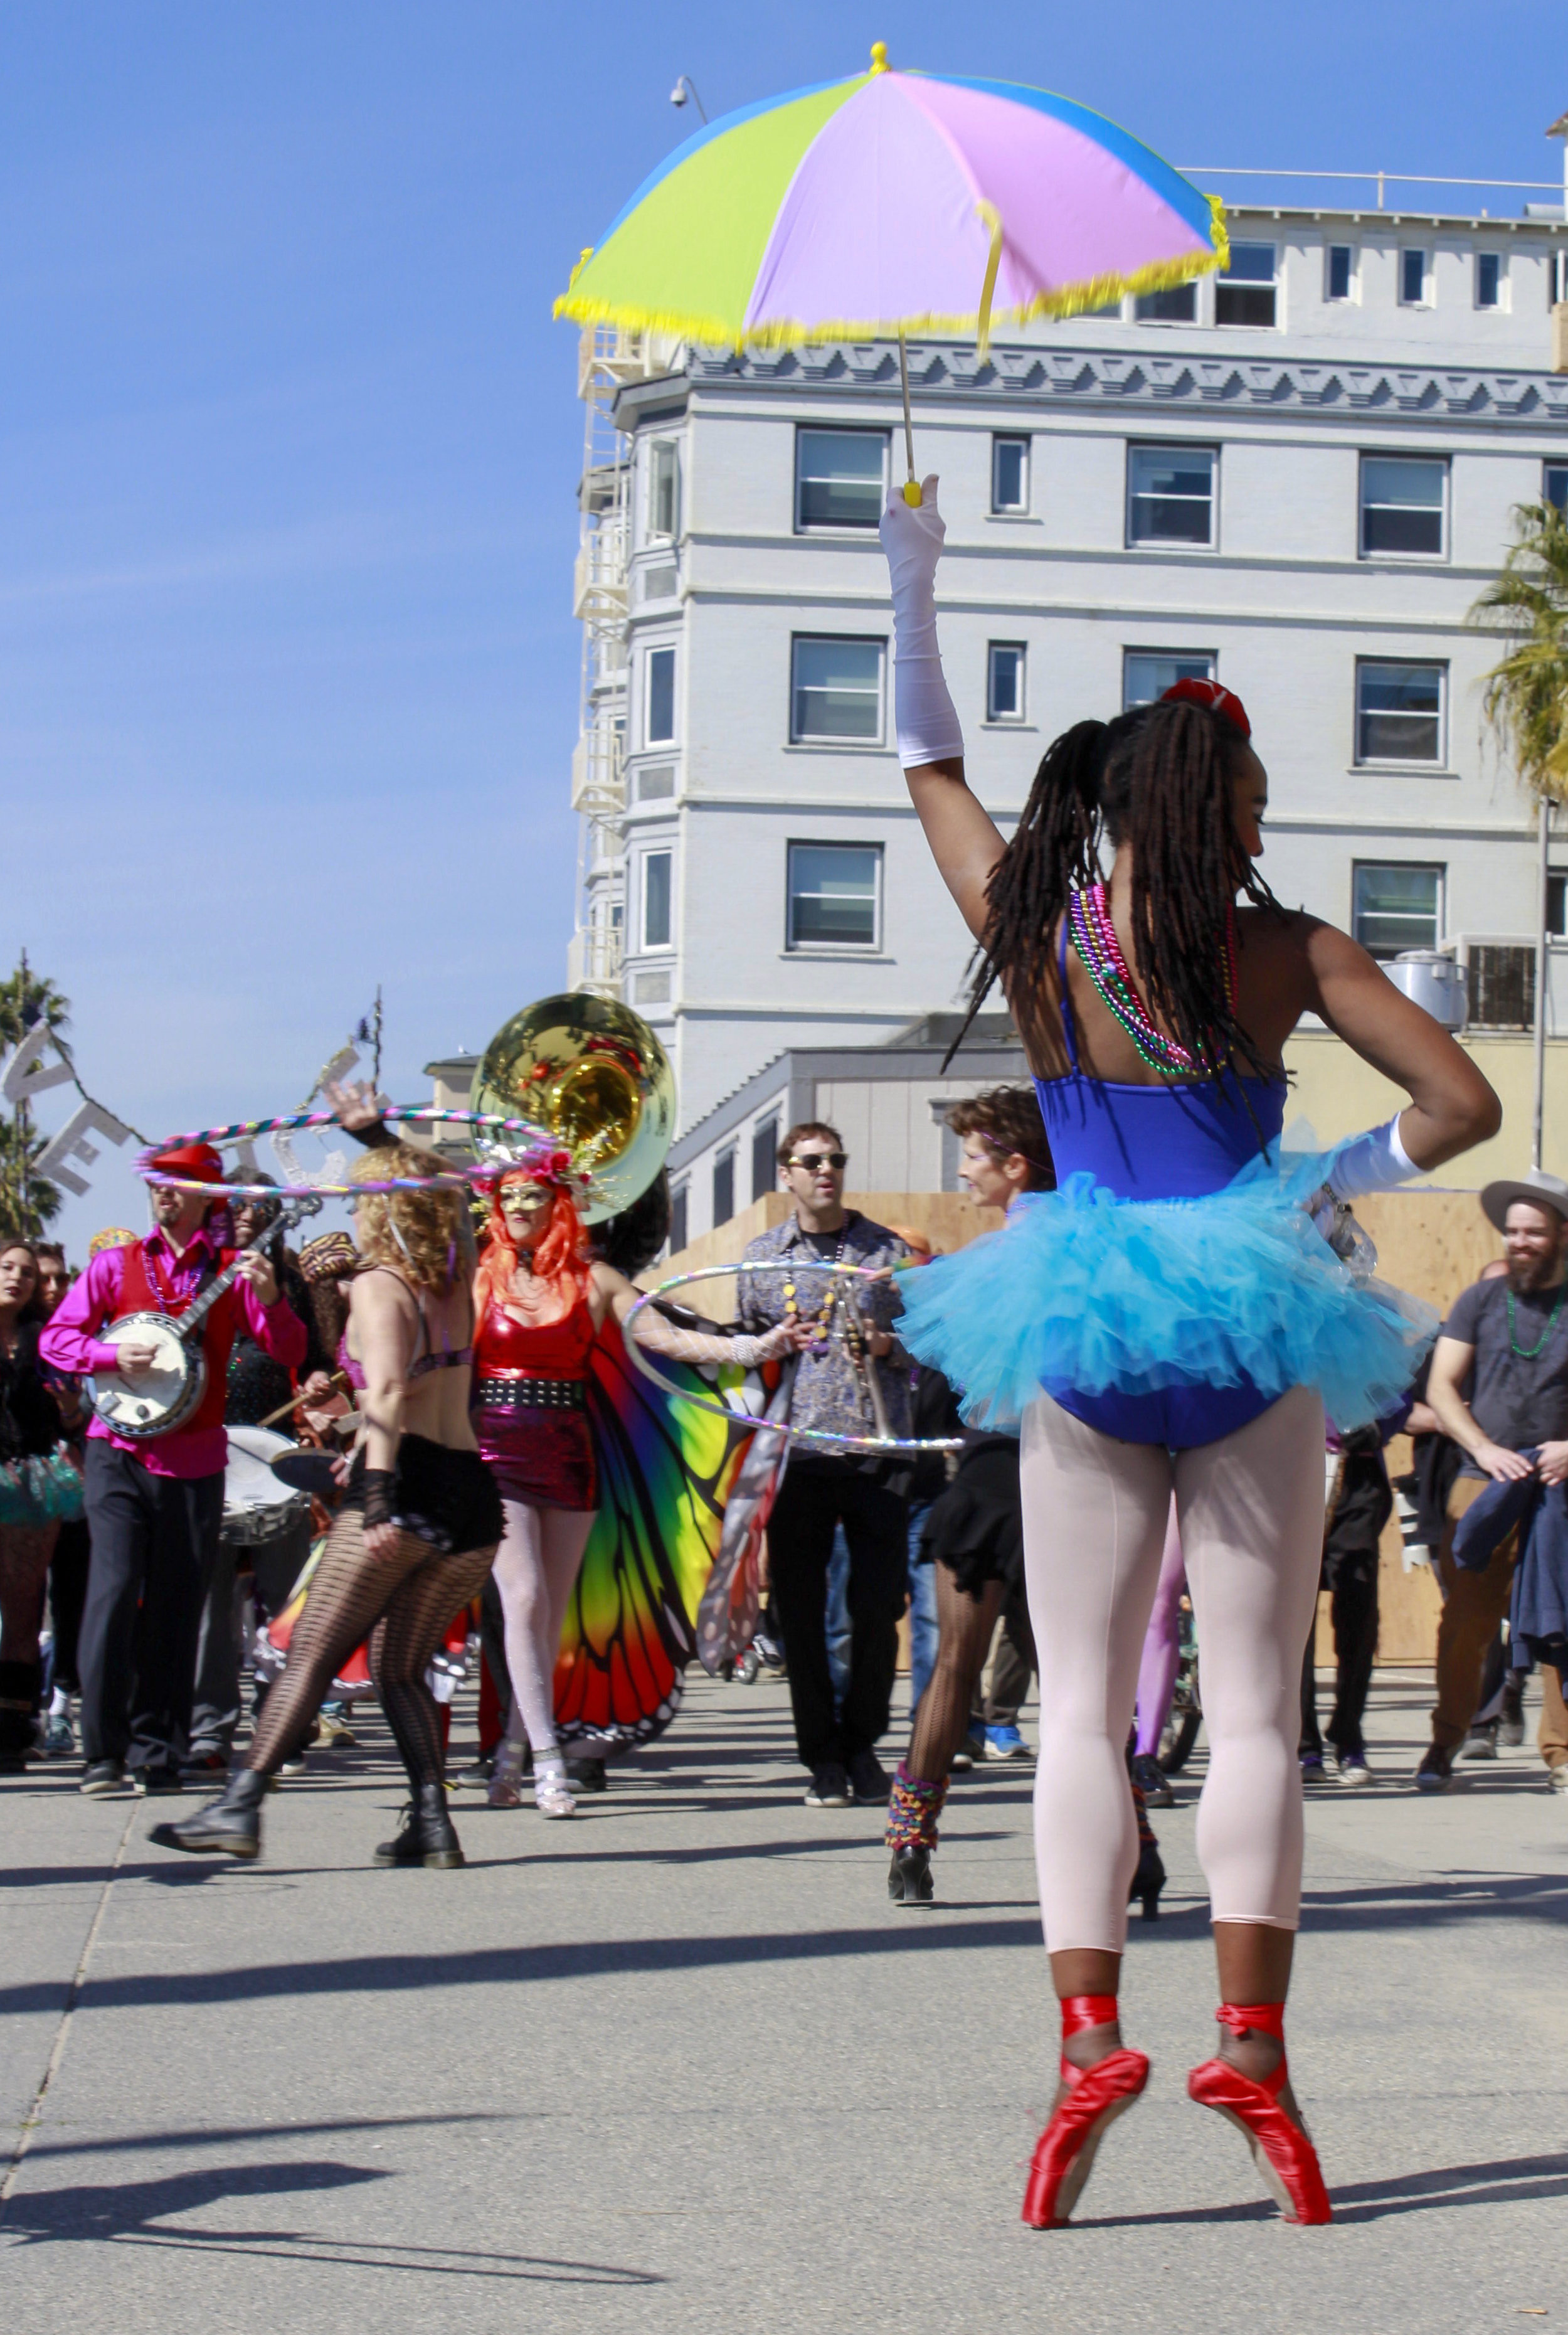 The Venice Beach Mardi Gras parade picking up steam on the boardwalk of Venice Beach in Los Angeles, California on Feb 23, 2019. Photo by Danica Creahan.